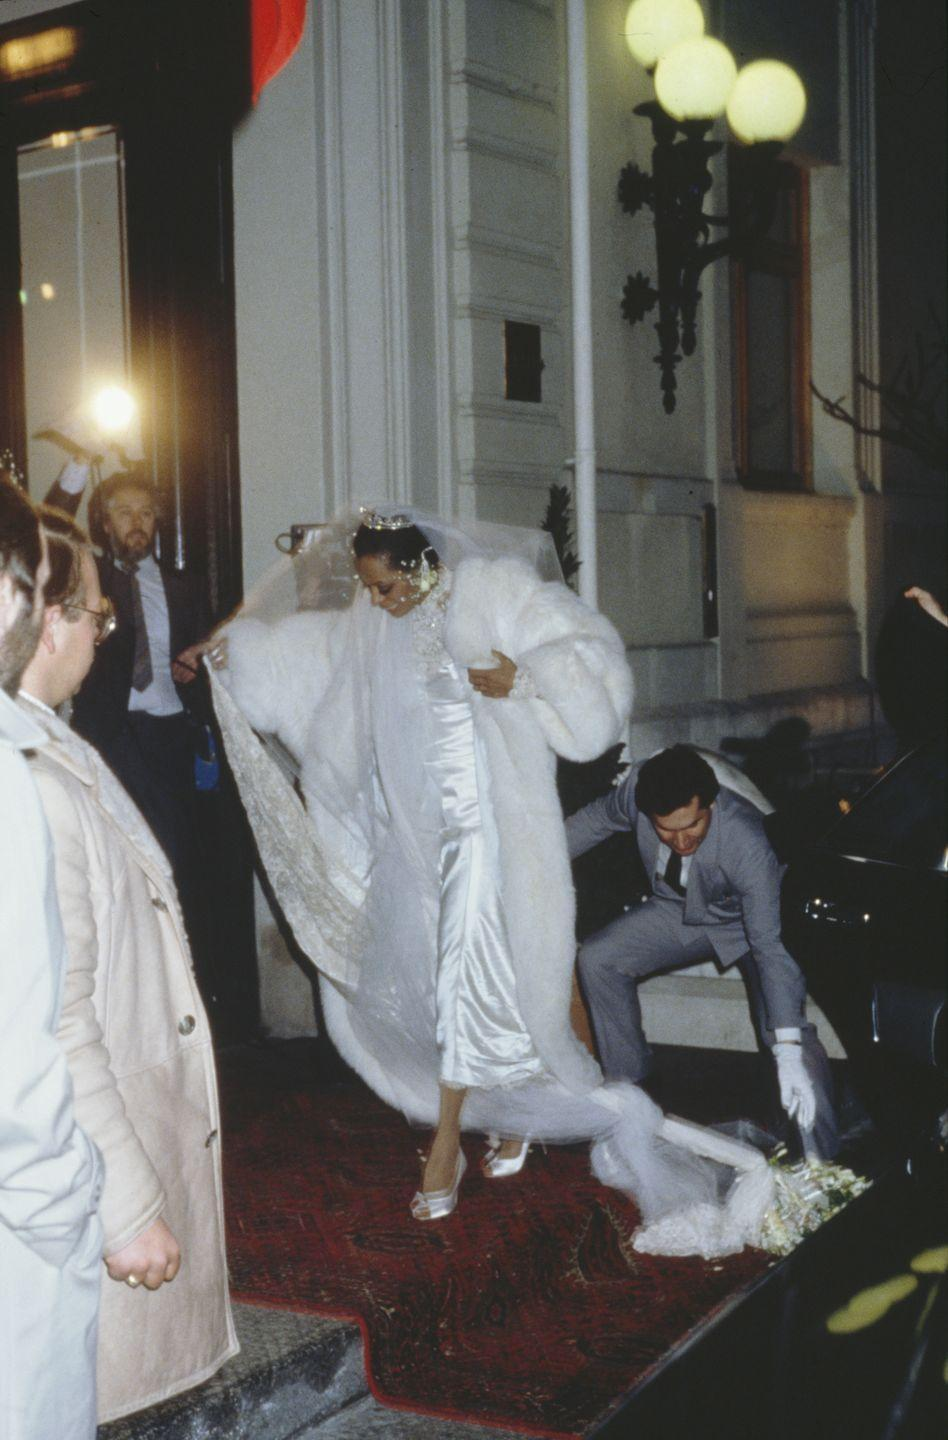 <p>Diana Ross wears a full-length white fur coat to her February nuptials in Romainmotier, Switzerland to Norwegian businessman Arne Naess Jr. The Queen of Motown gets help with her tangled satin and lace dress on her way in.</p>